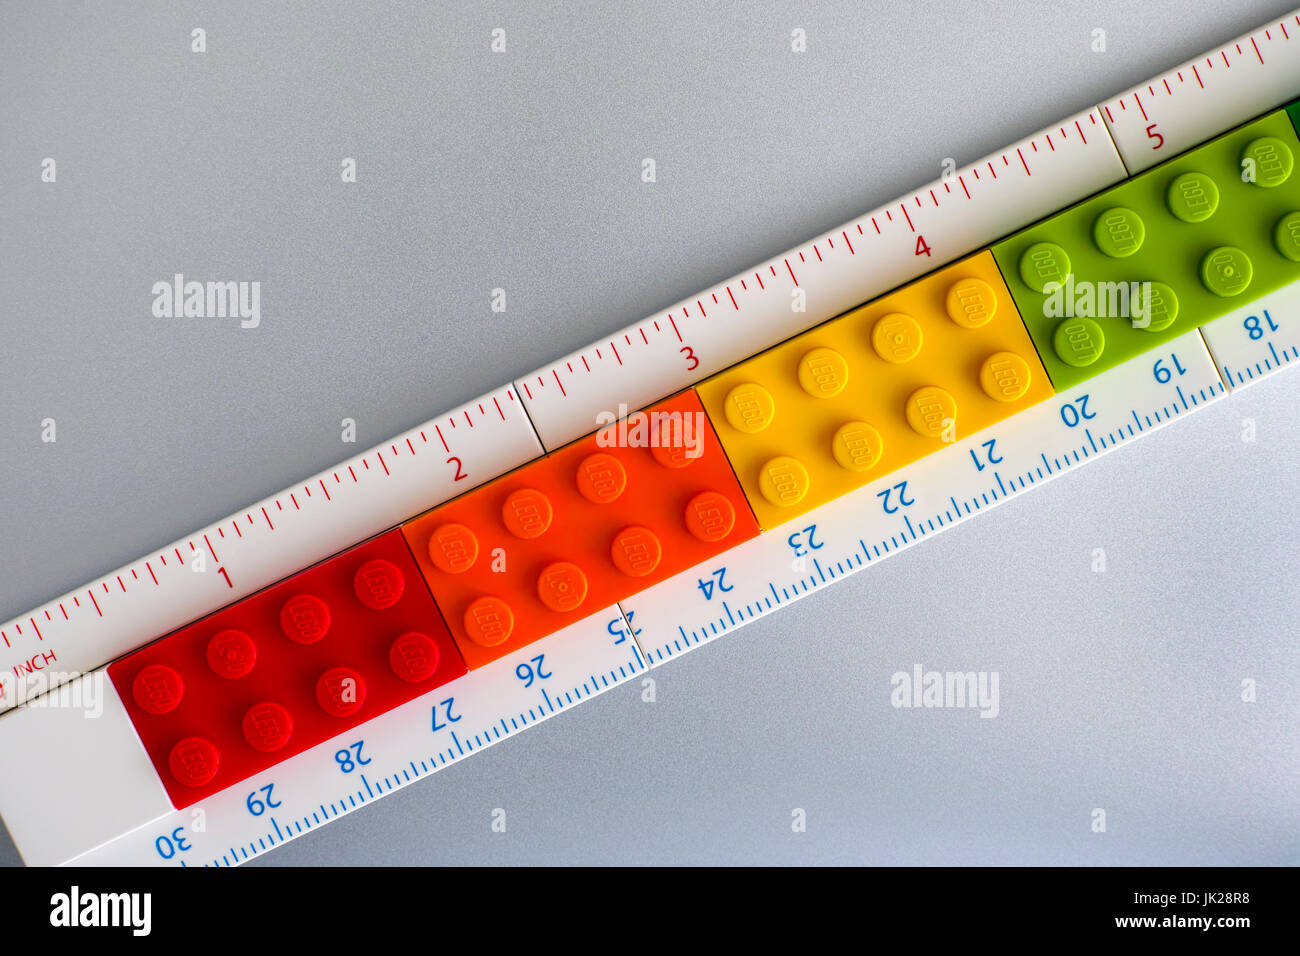 Tambov russian federation may 20 2017 lego ruler with inches and tambov russian federation may 20 2017 lego ruler with inches and centimeters made buycottarizona Image collections